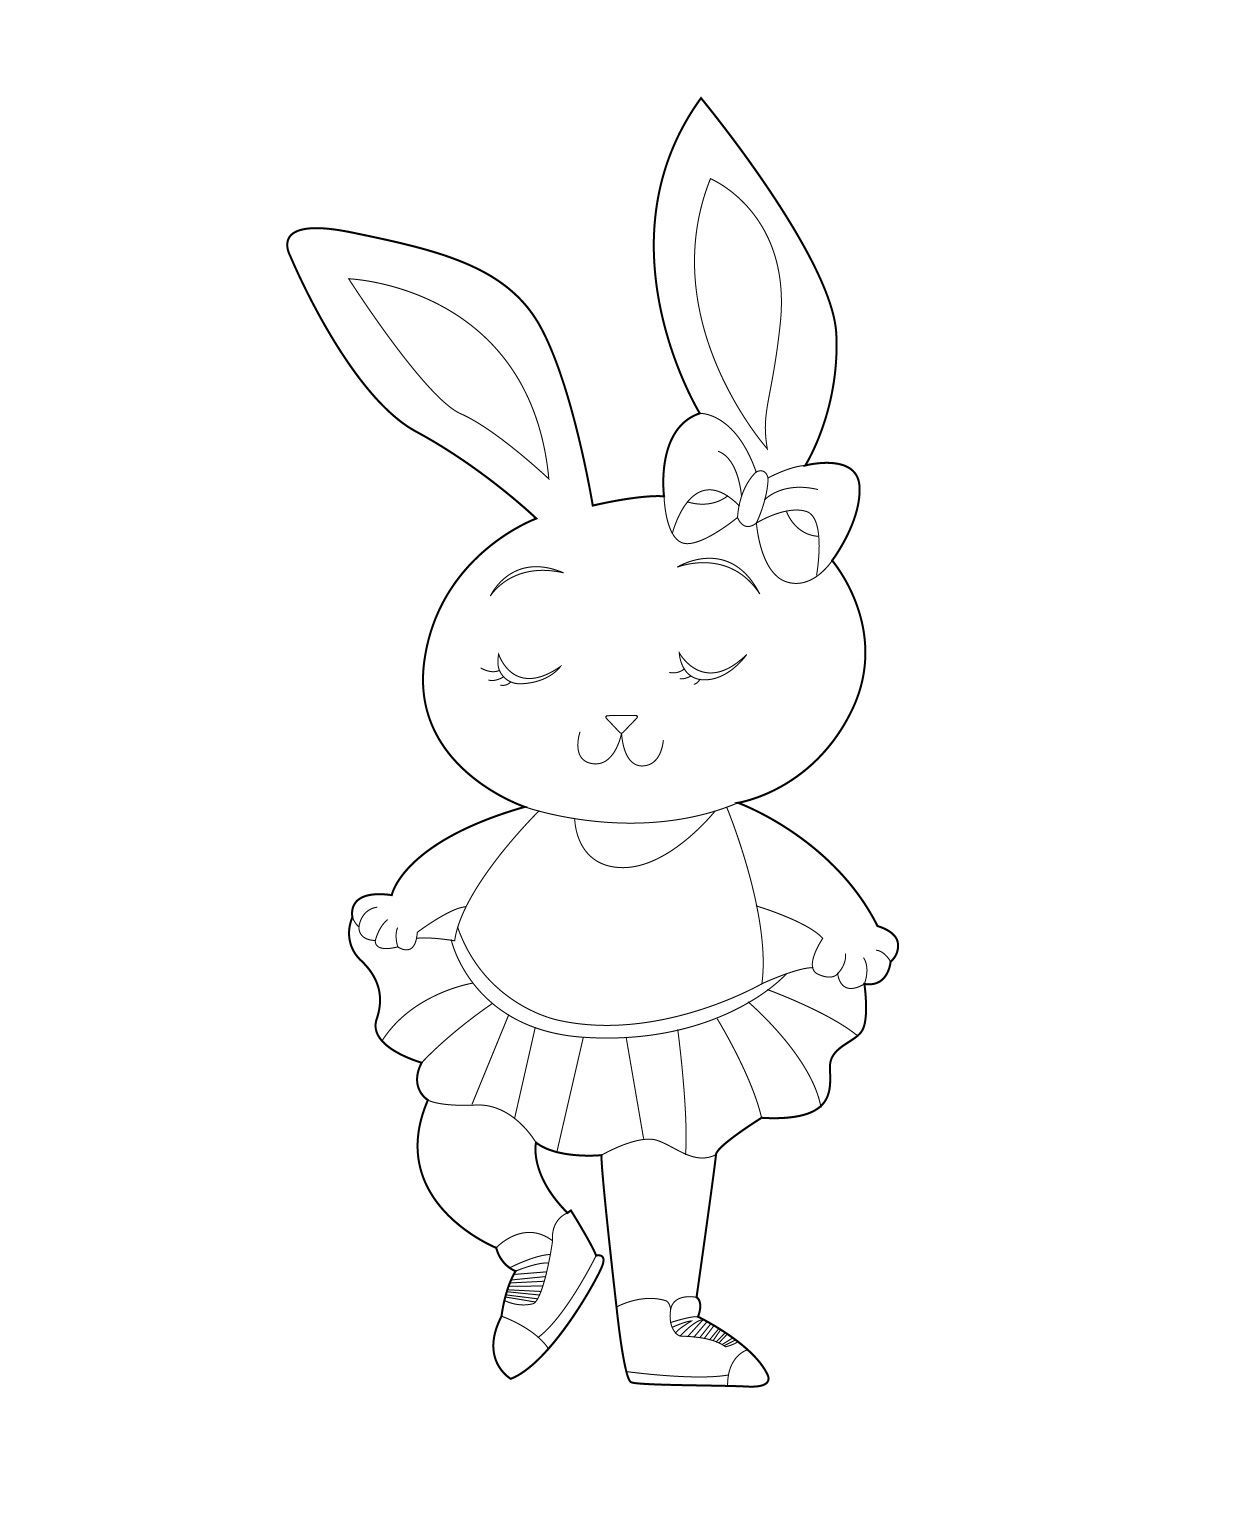 Download Your Free Bella Bunny Coloring Pages Bella Bunny Is A